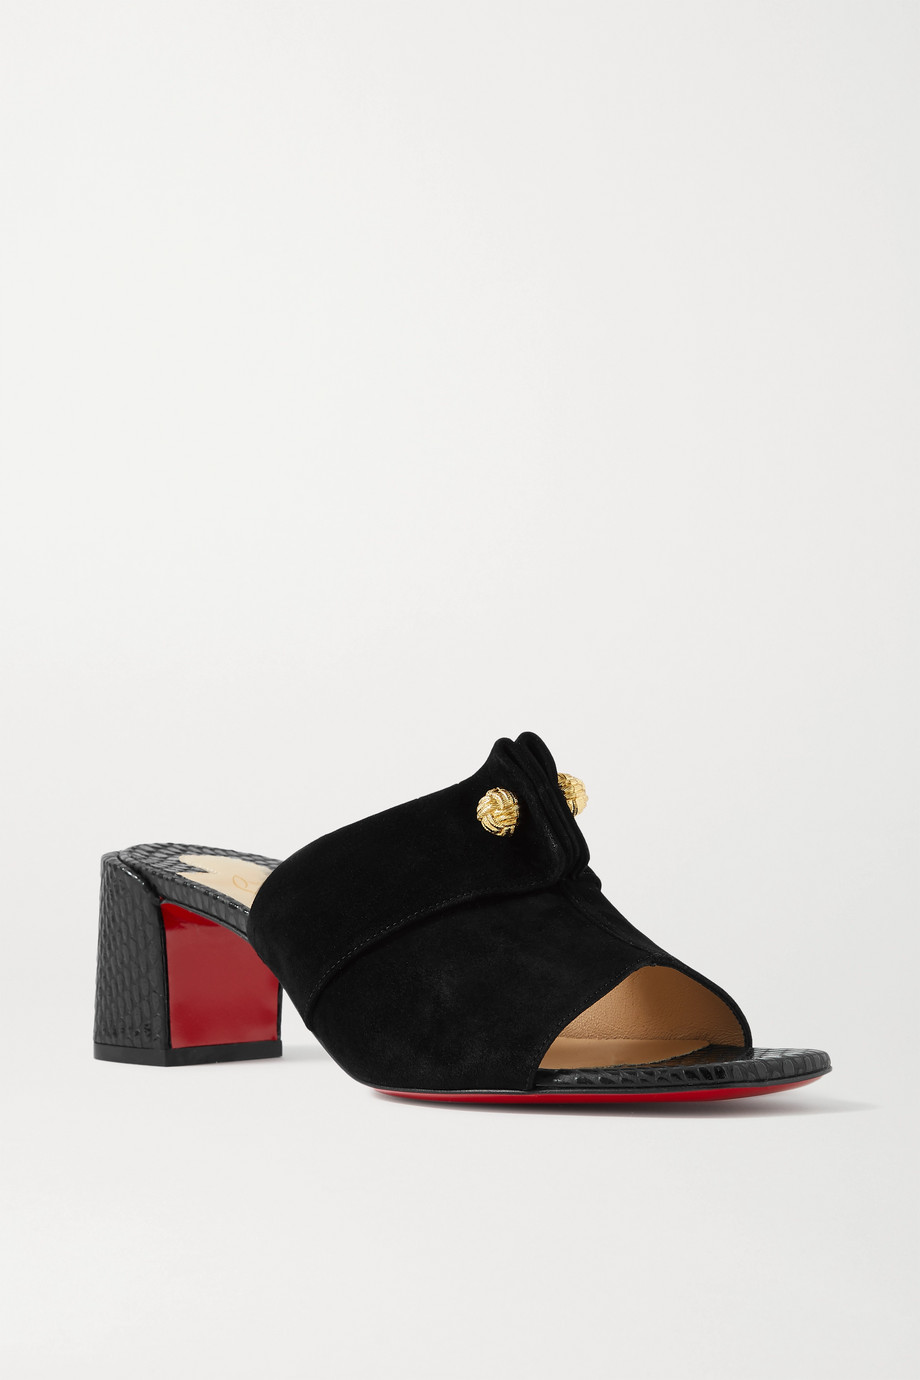 Christian Louboutin Stanislove 55 suede and lizard-effect leather mules